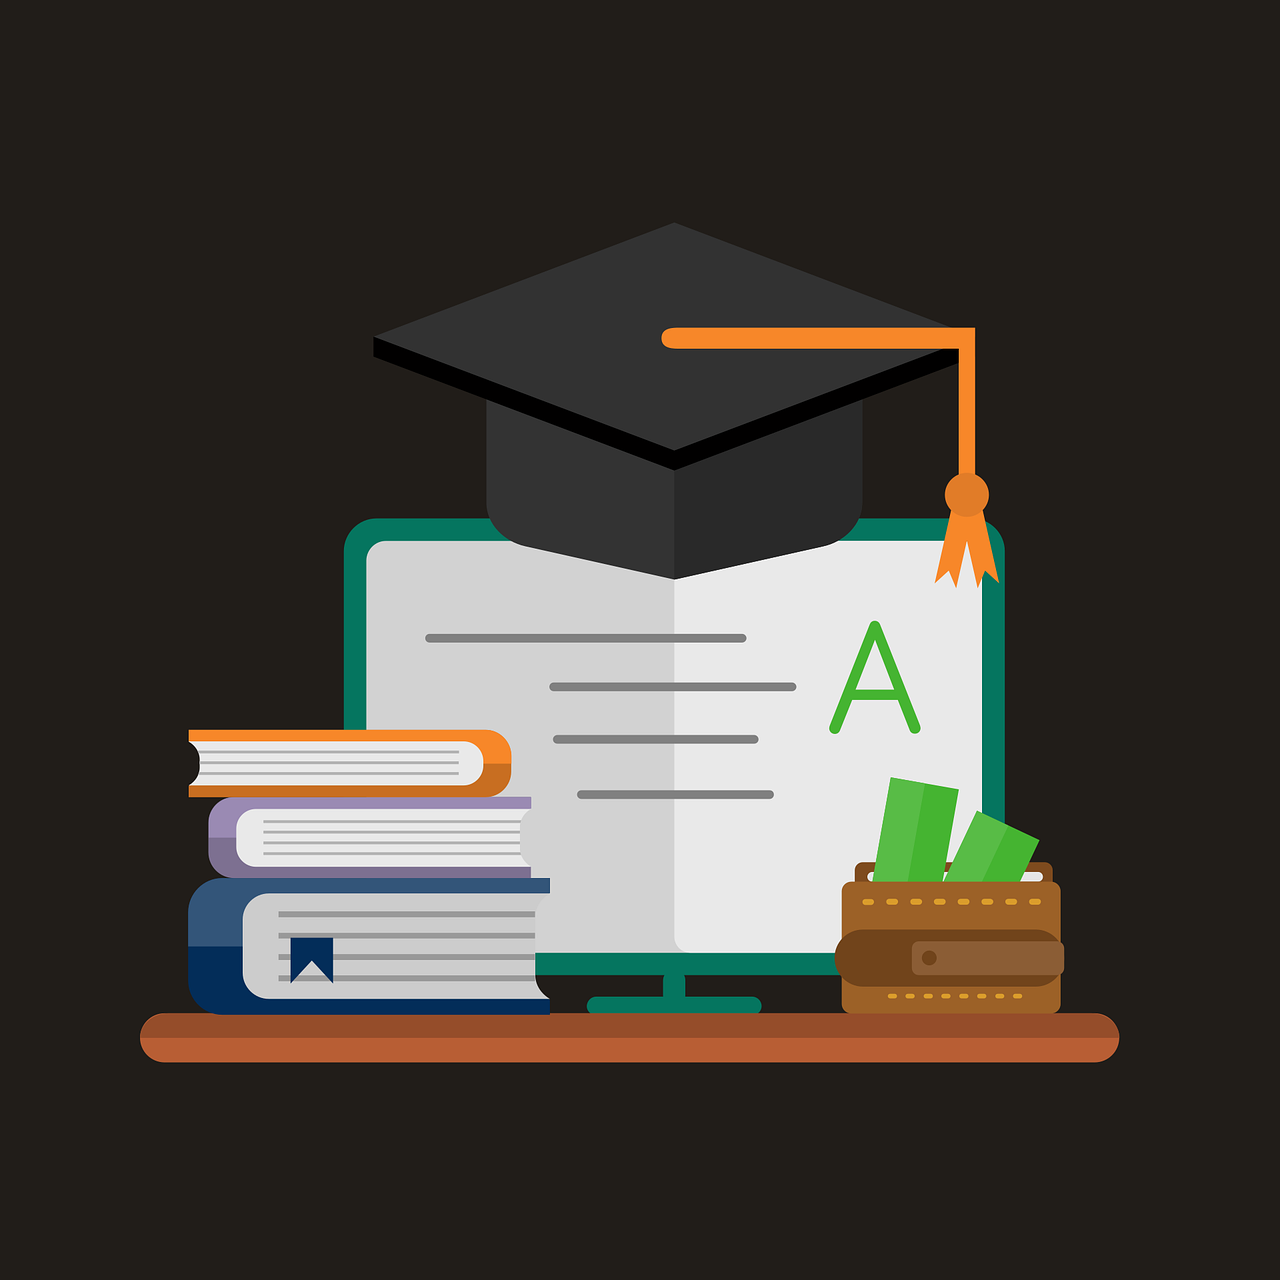 Transitioning from the Master's to the PhD: Things You Need to Know